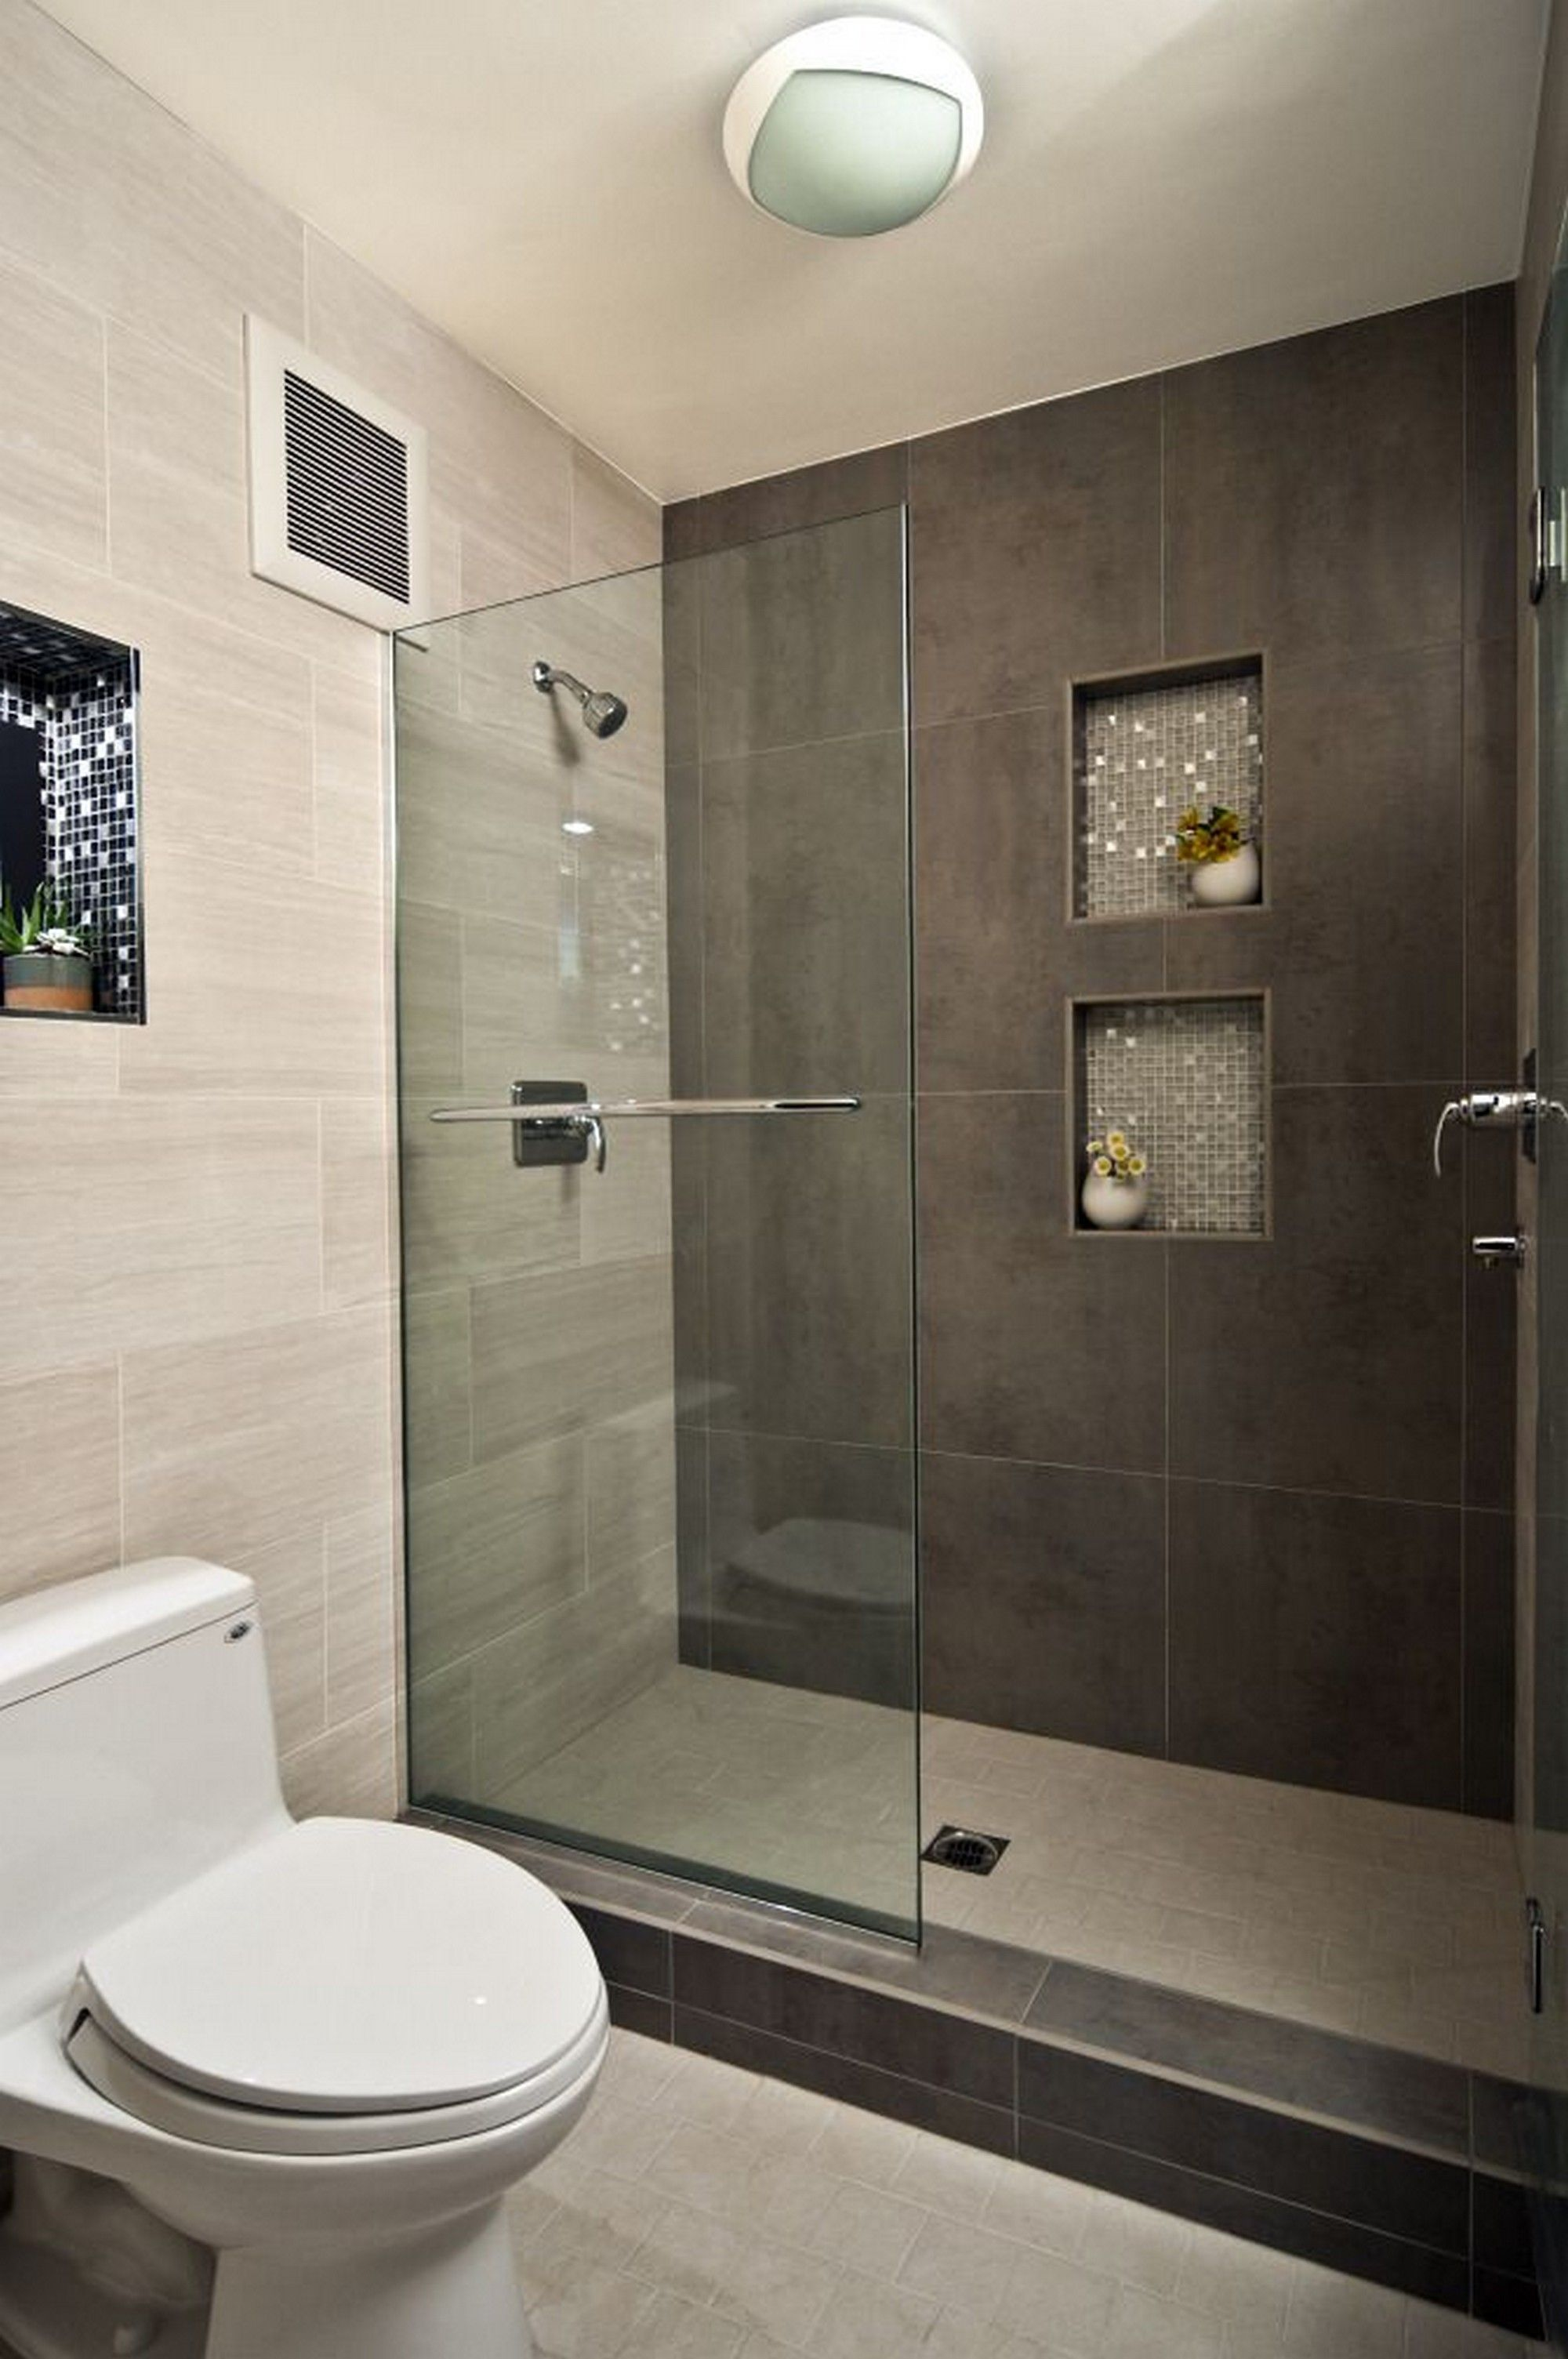 Walk in shower designs for small bathrooms - Modern Bathroom Design Ideas With Walk In Shower